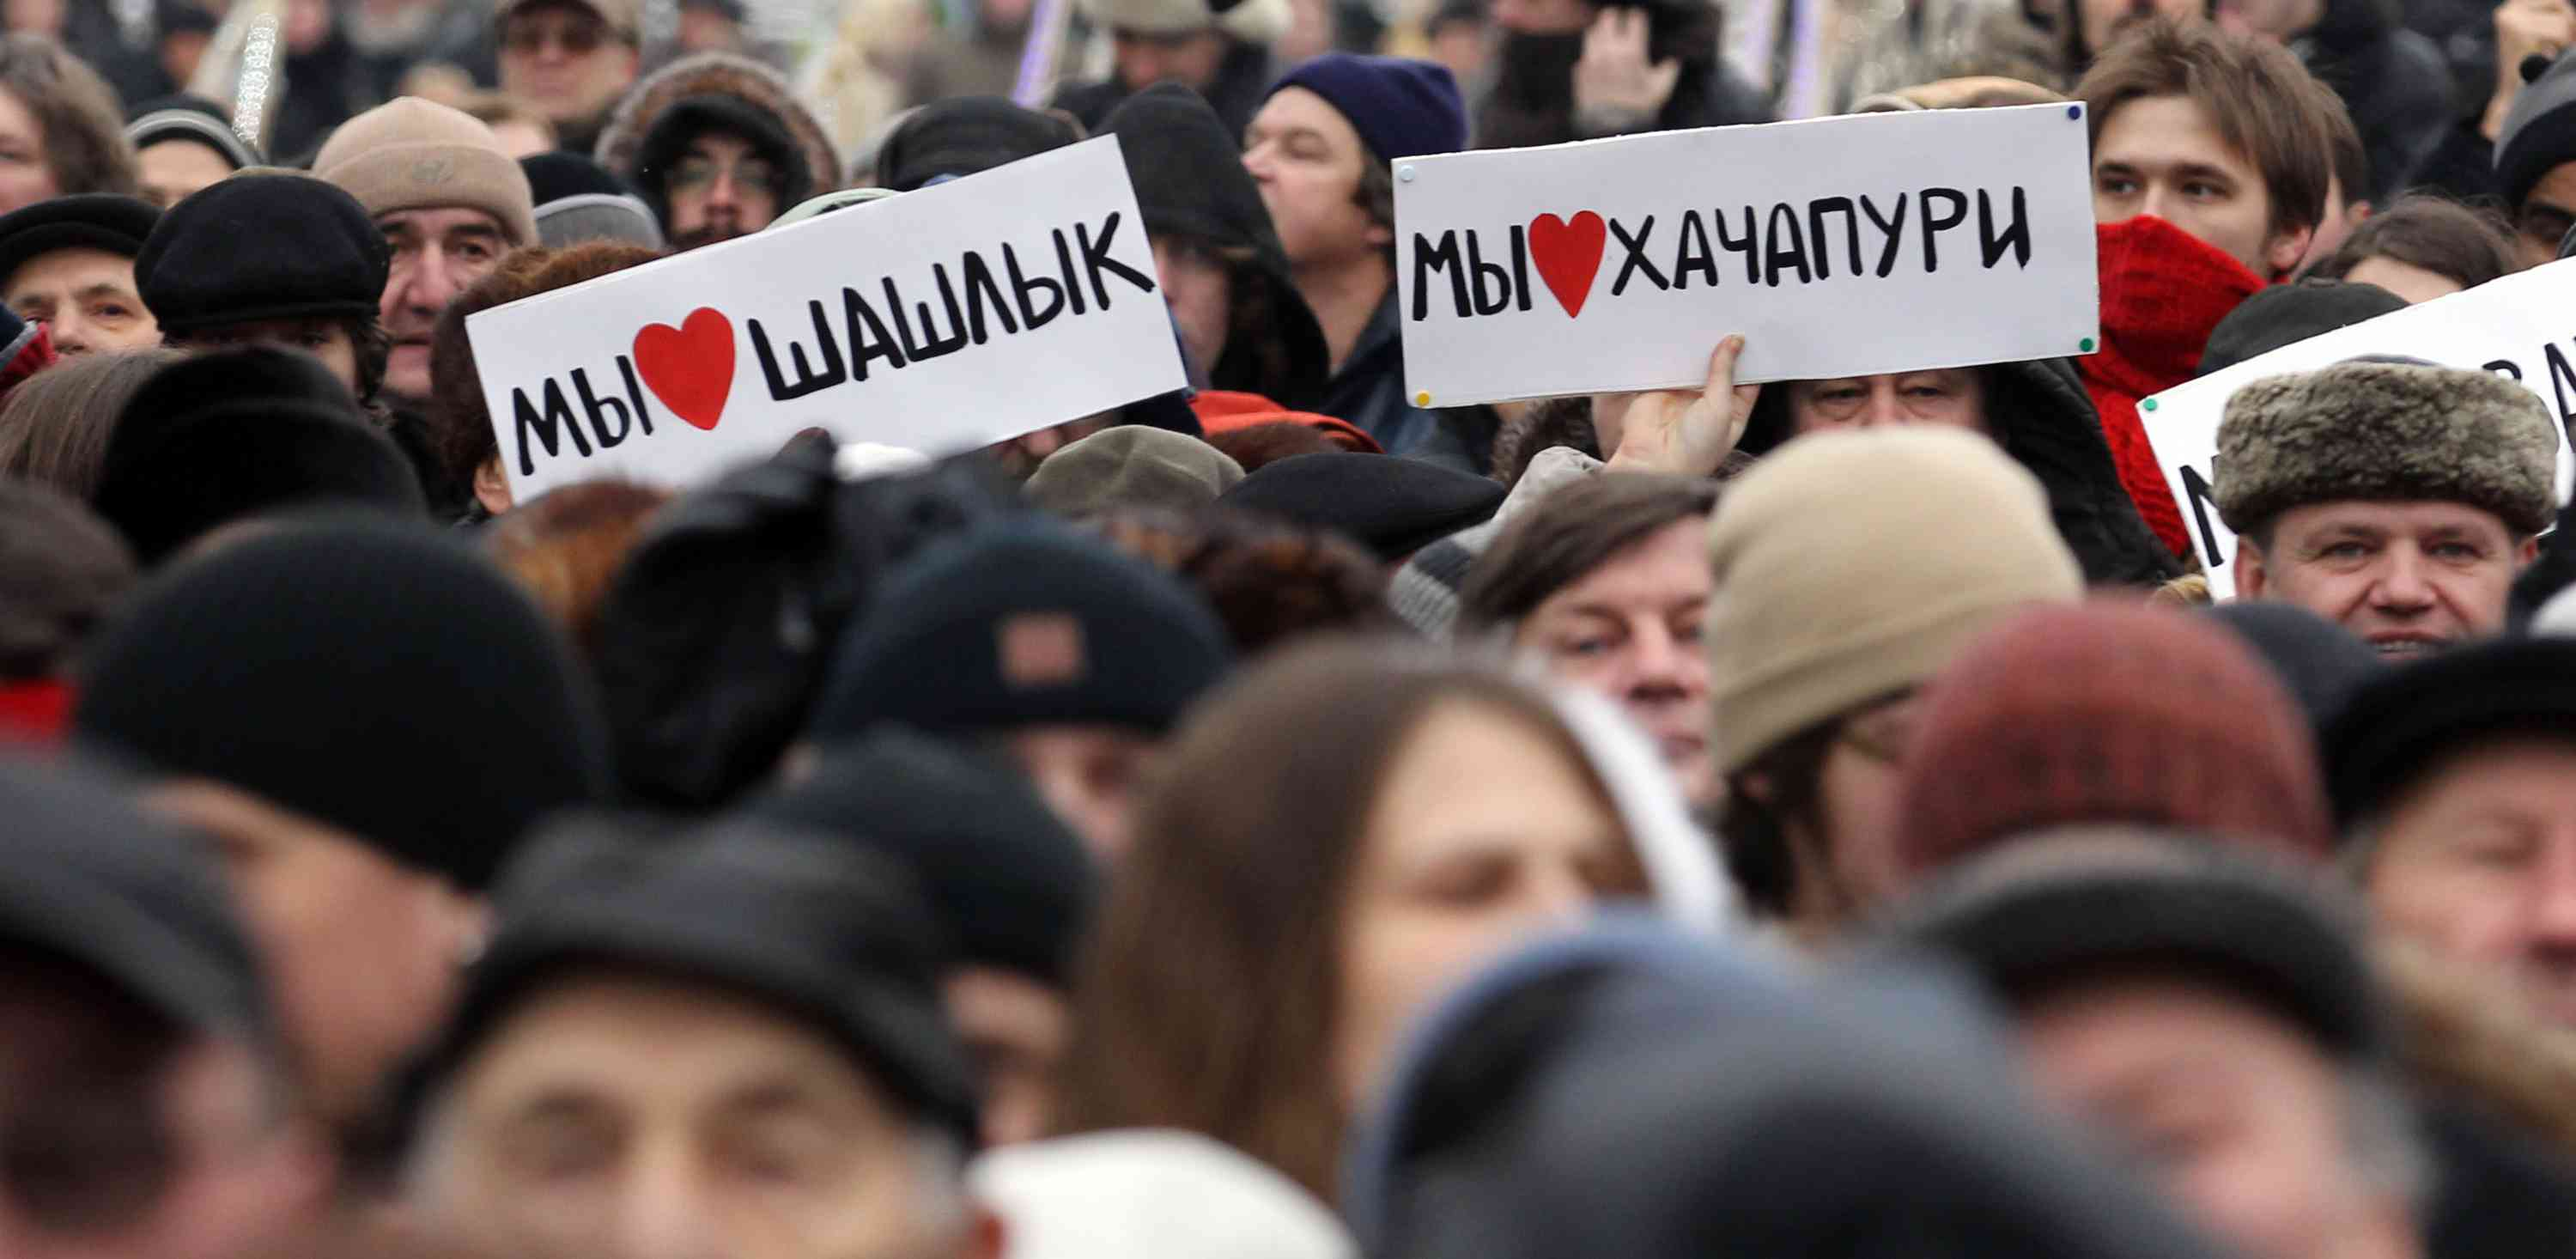 "People hold posters reading ""We like kebab!"" and ""We like khachapuri!"" (Georgian cheese pastry) during a rally ""Russia without Fascism"", against the xenophobic state of public opinion in a society in Moscow, on December 26, 2010. Photo credit: Alexey Sazonov/AFP"